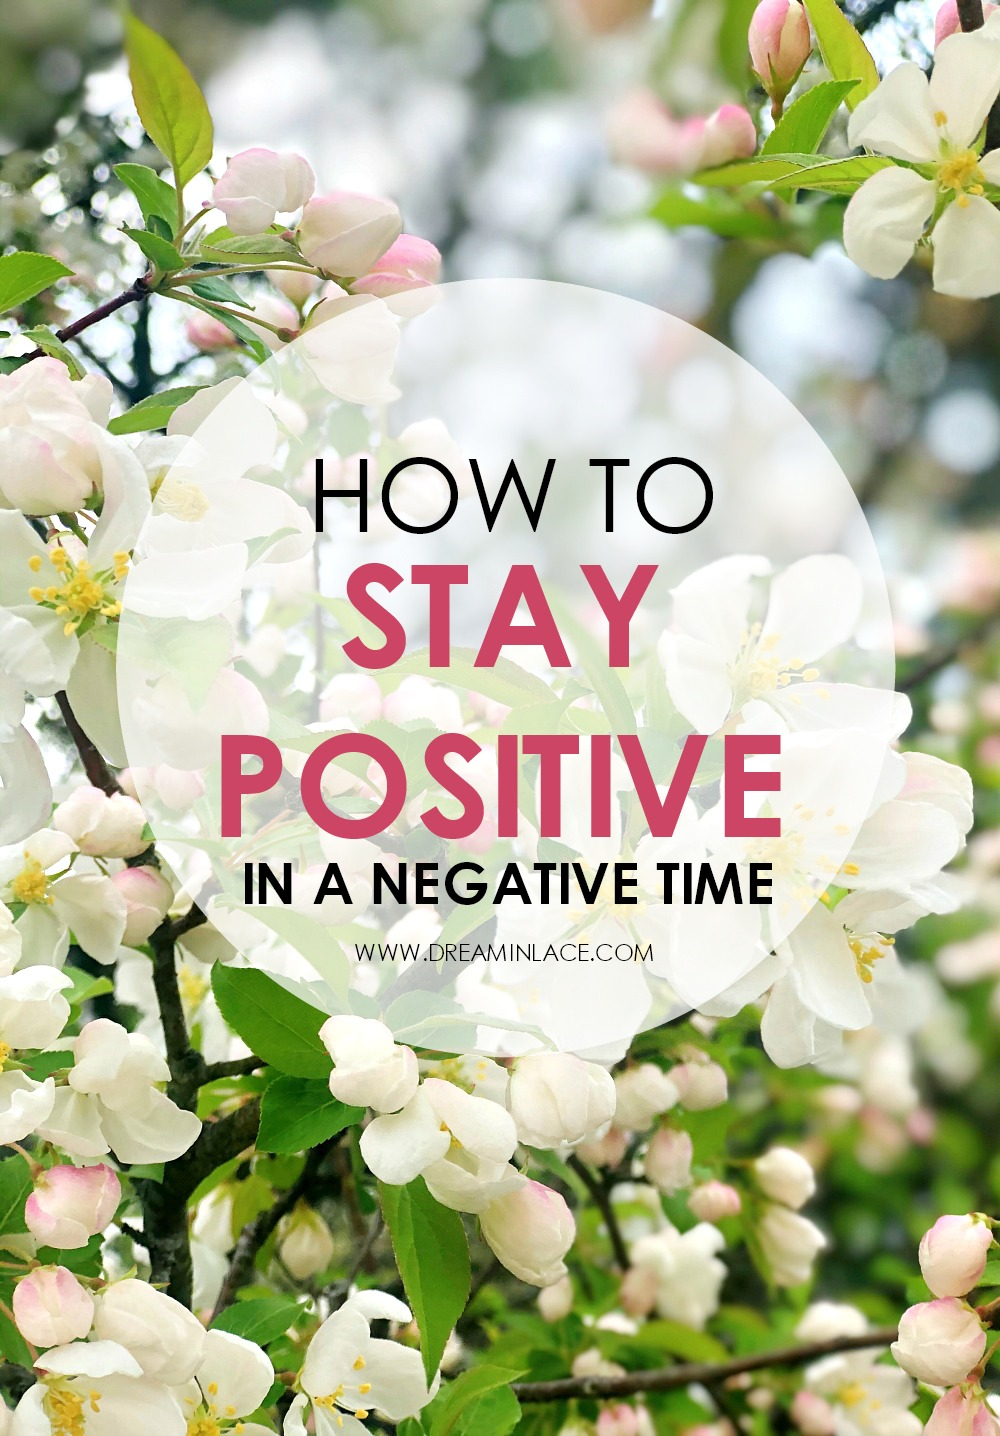 How to Stay Positive During the COVID-19 Crisis I Dreaminlace.com